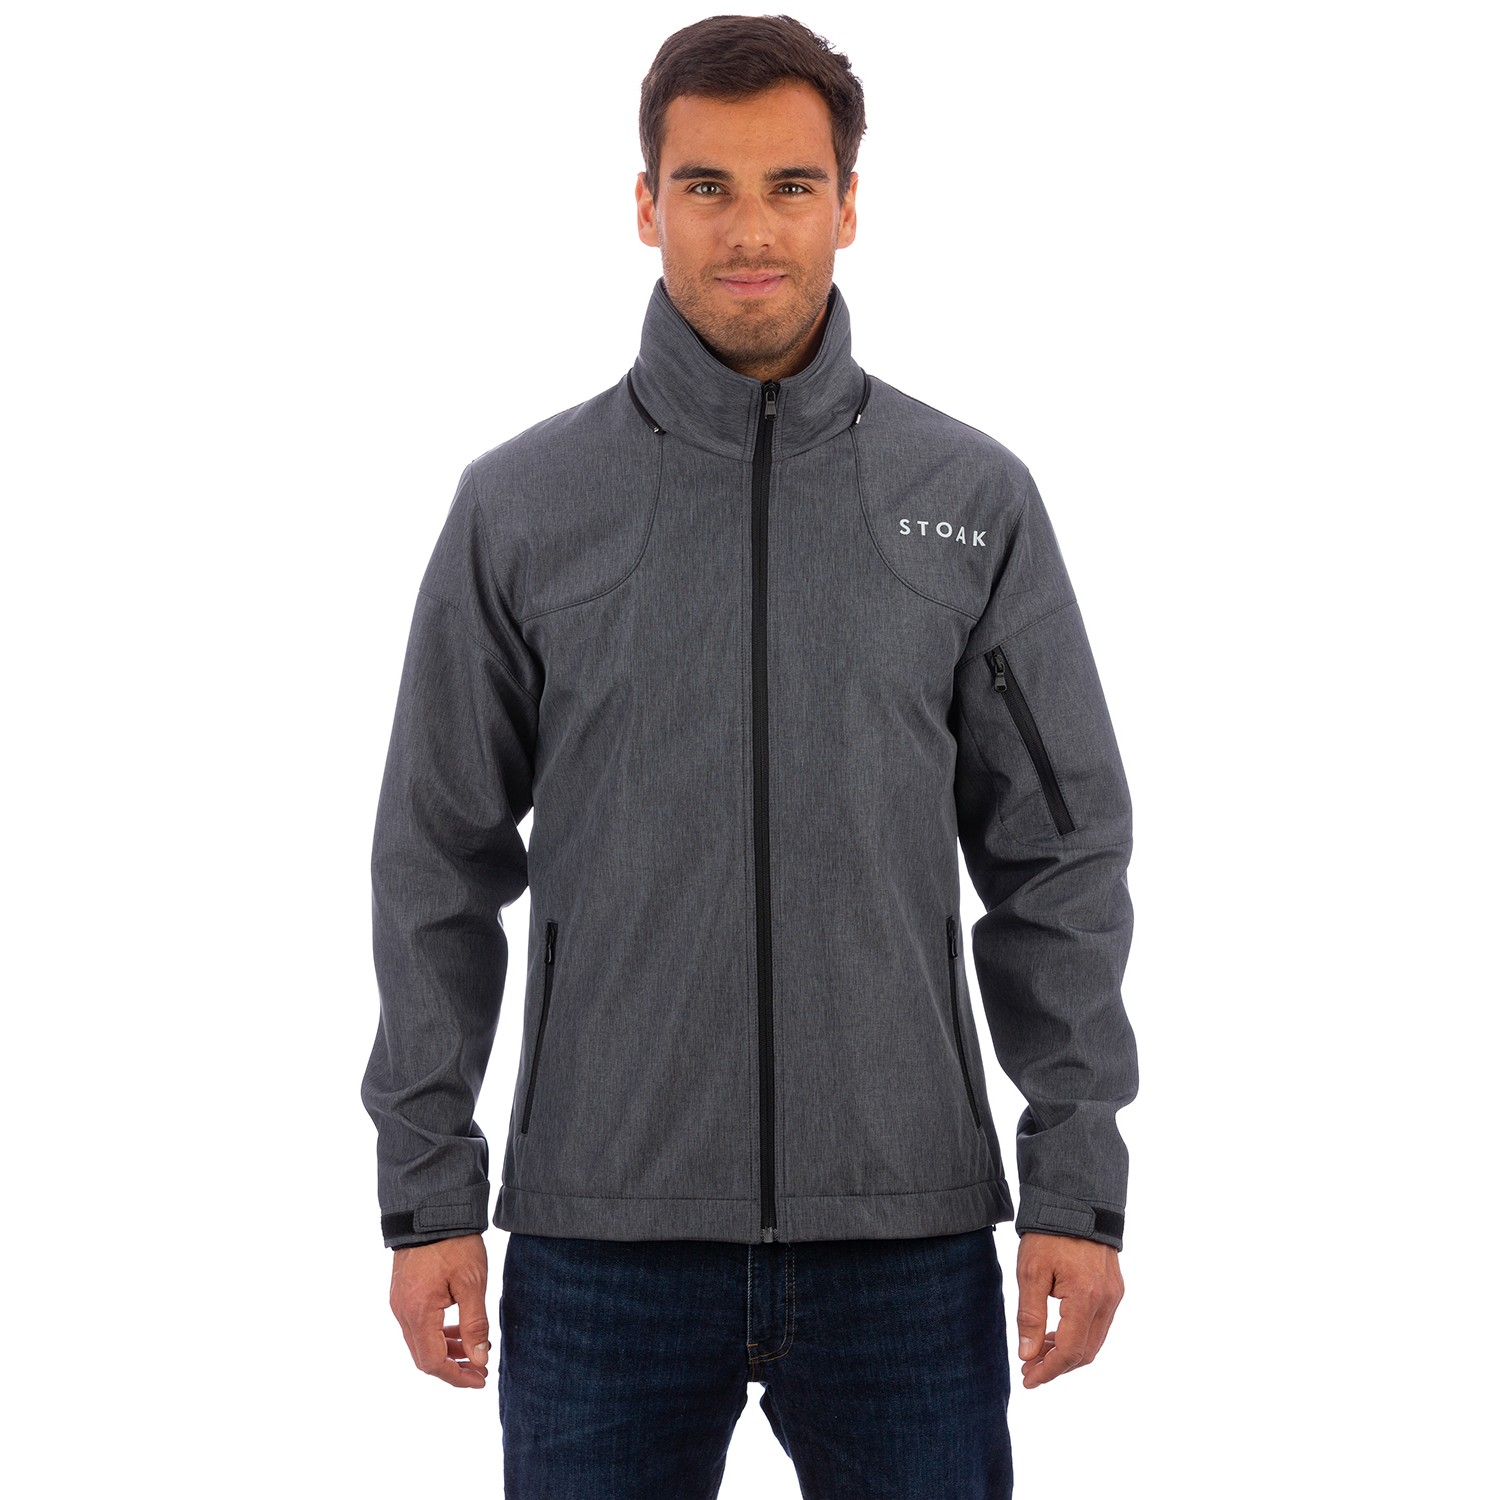 STOAK TITAN Performance Softshell Jacket